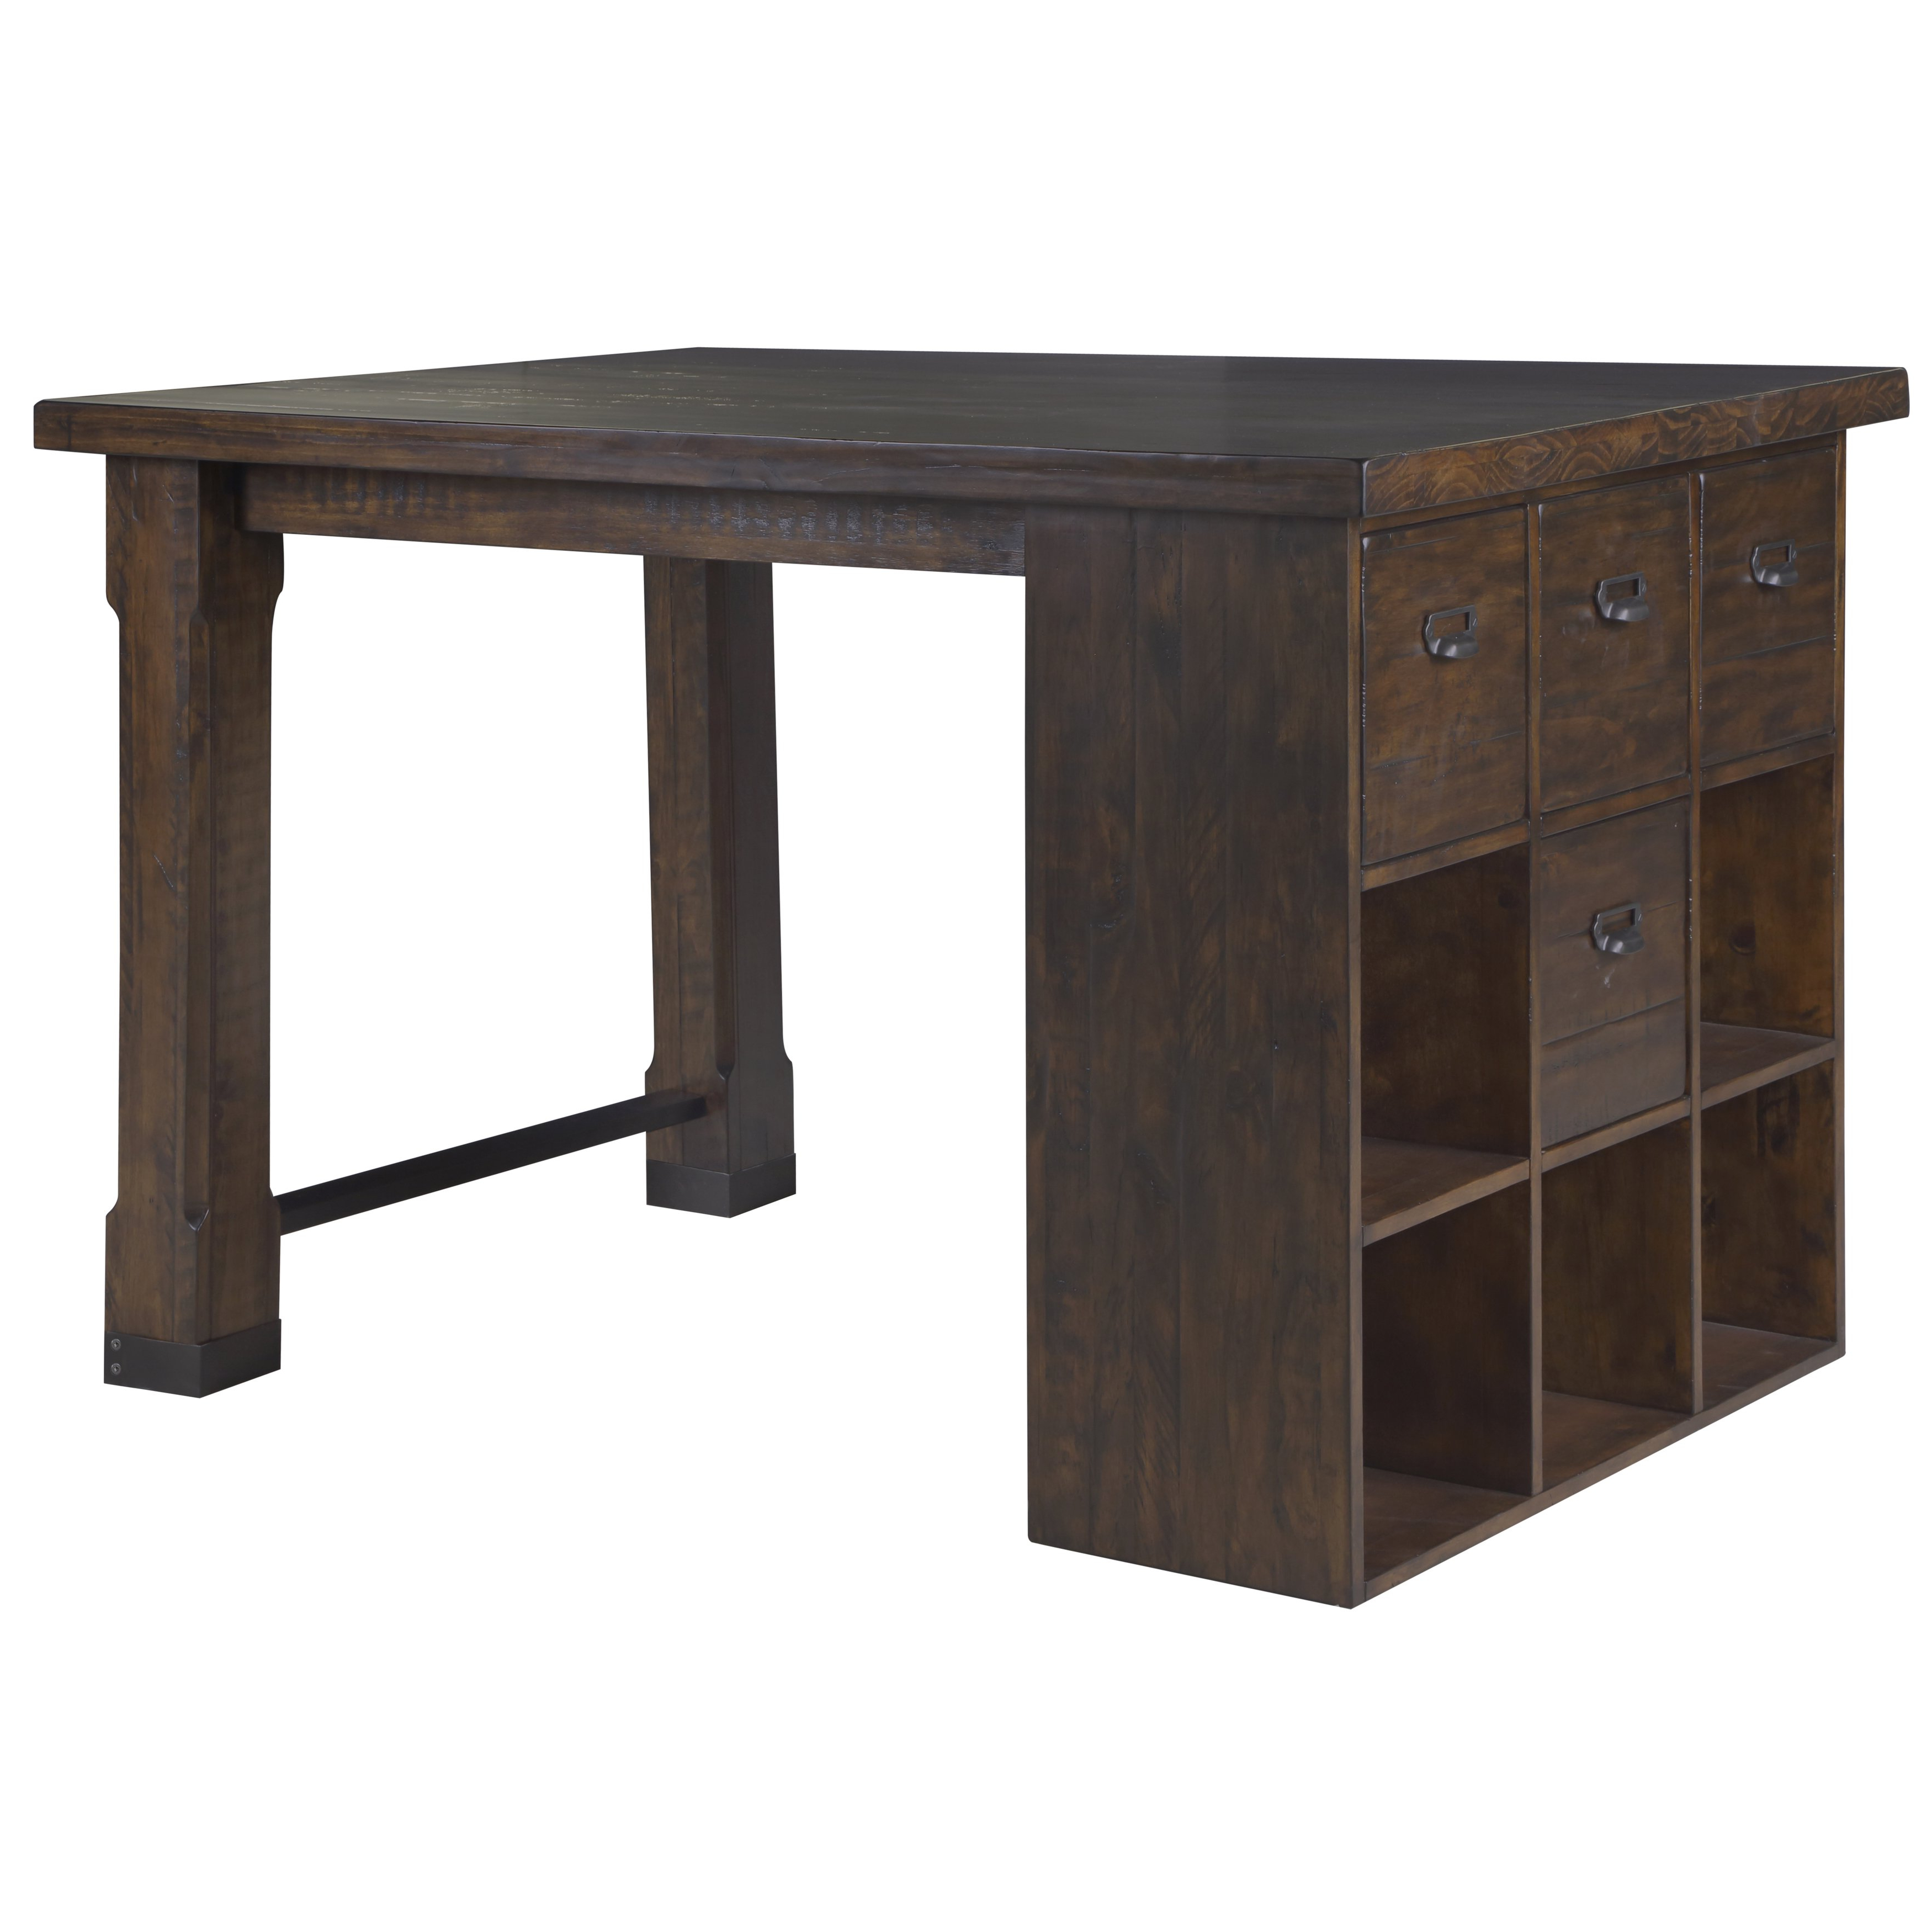 Aged Iron Cube Tables With Latest Shop Silver Orchid Bowers Asymmetrical Counter Height Desk With Cube (View 9 of 20)